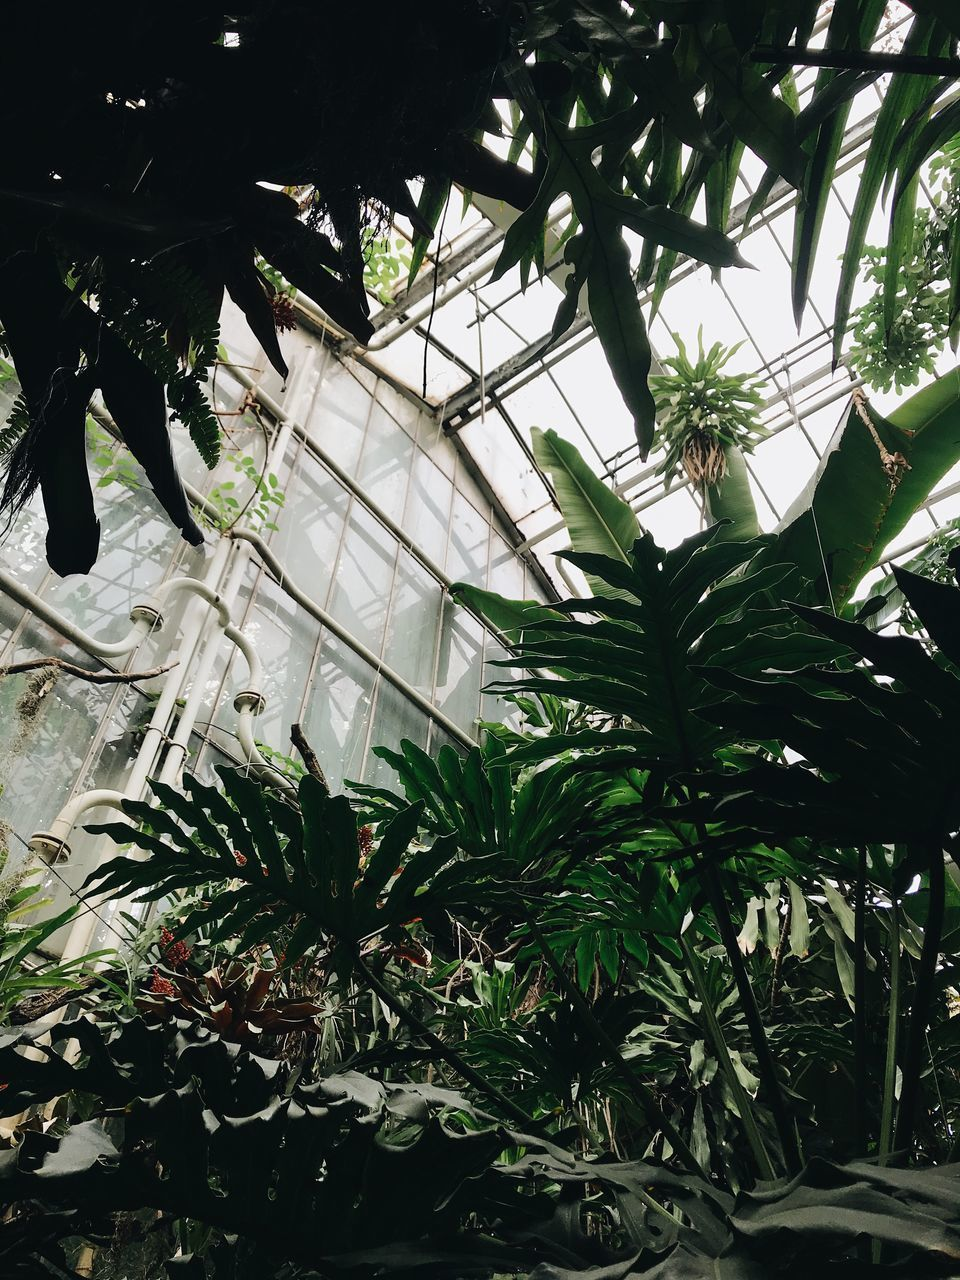 LOW ANGLE VIEW OF PALM TREE IN GREENHOUSE